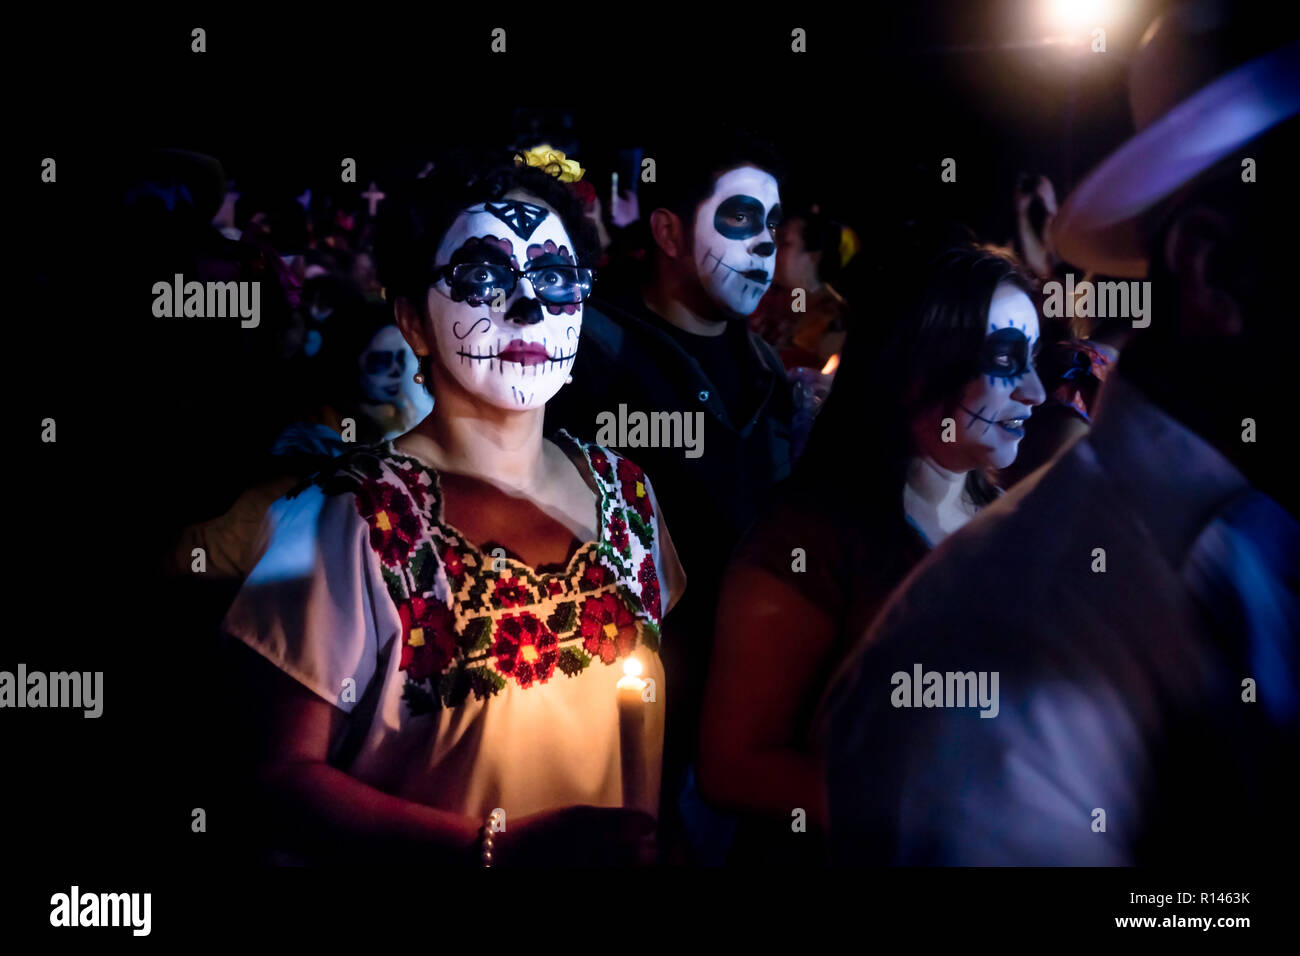 Merida, Cementerio General, Mexico - 31 October 2018: Woman with skull and spiderweb make-up and glasses and dress with traditional mexican flowers su Stock Photo